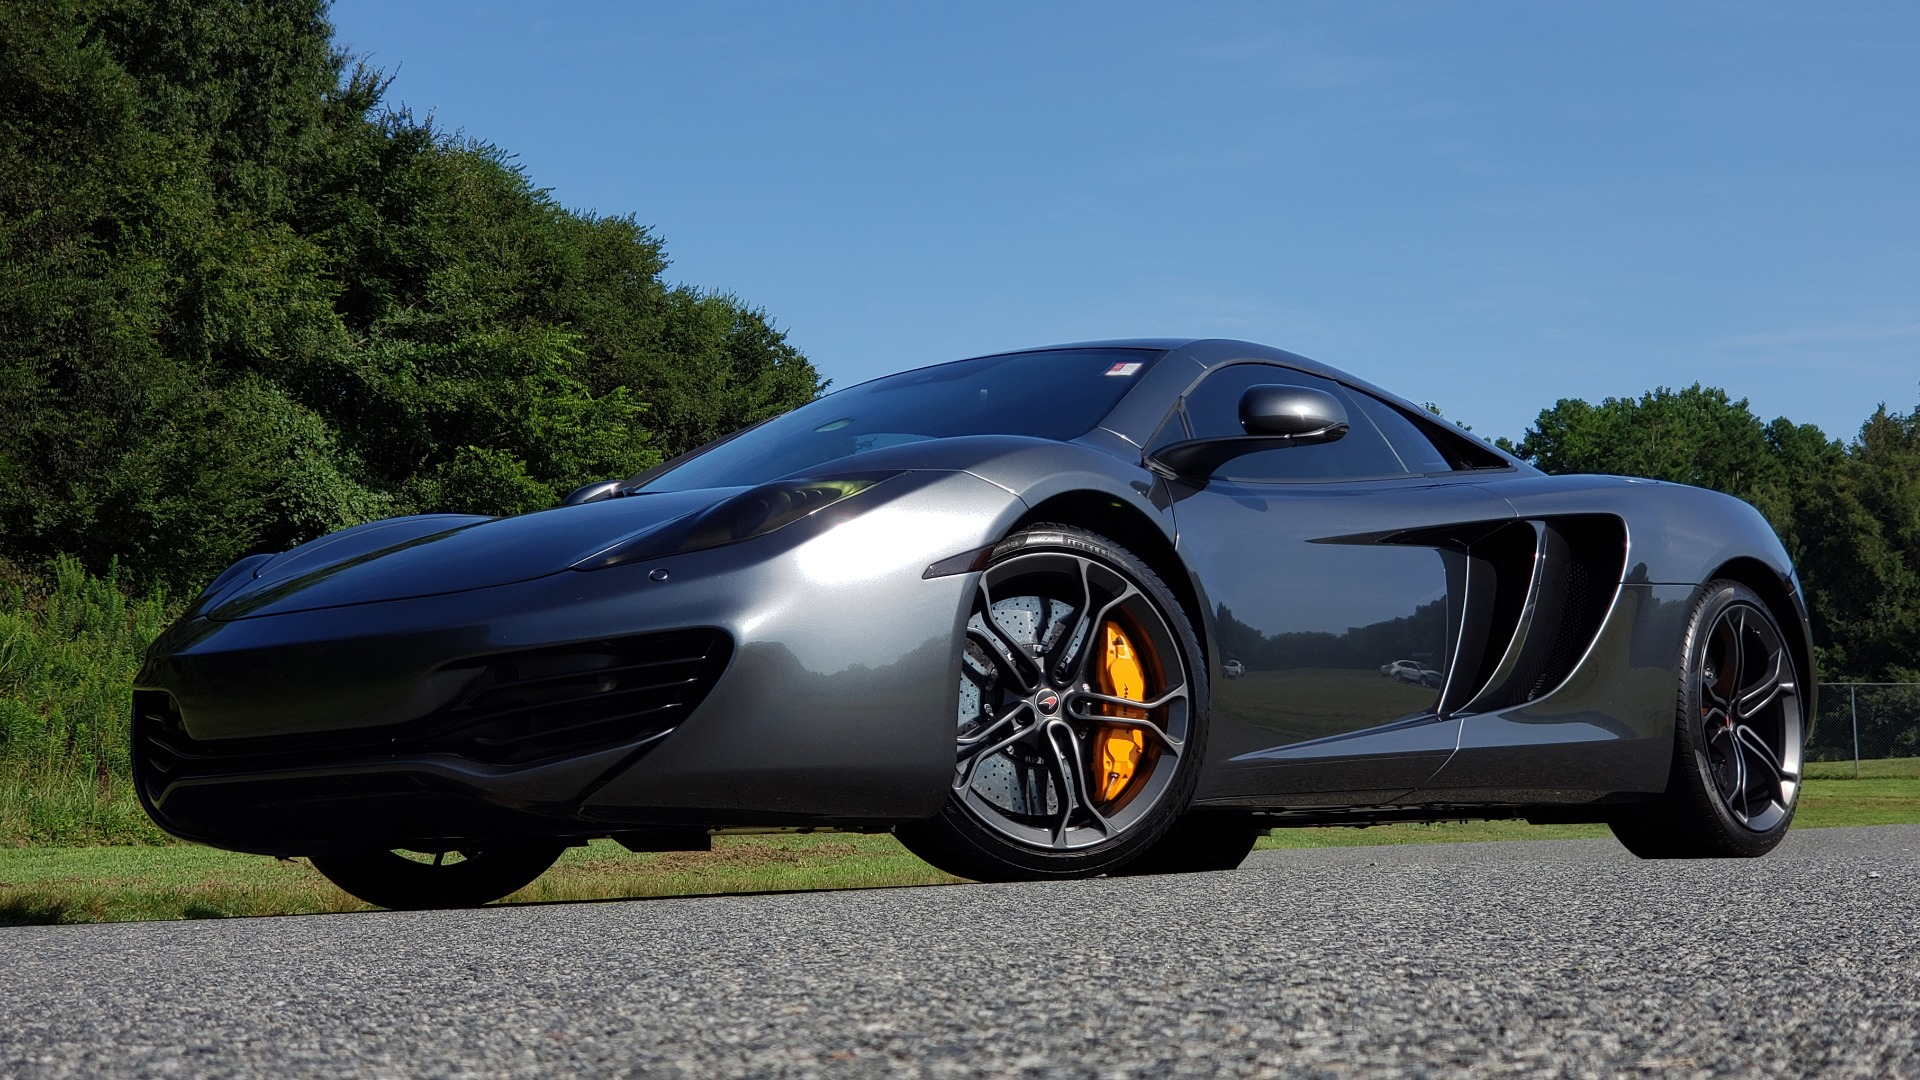 Used 2012 McLaren MP4-12C COUPE / 3.8 L V8 592HP / AUTO / NAV / CCB / LOW MILES for sale Sold at Formula Imports in Charlotte NC 28227 6